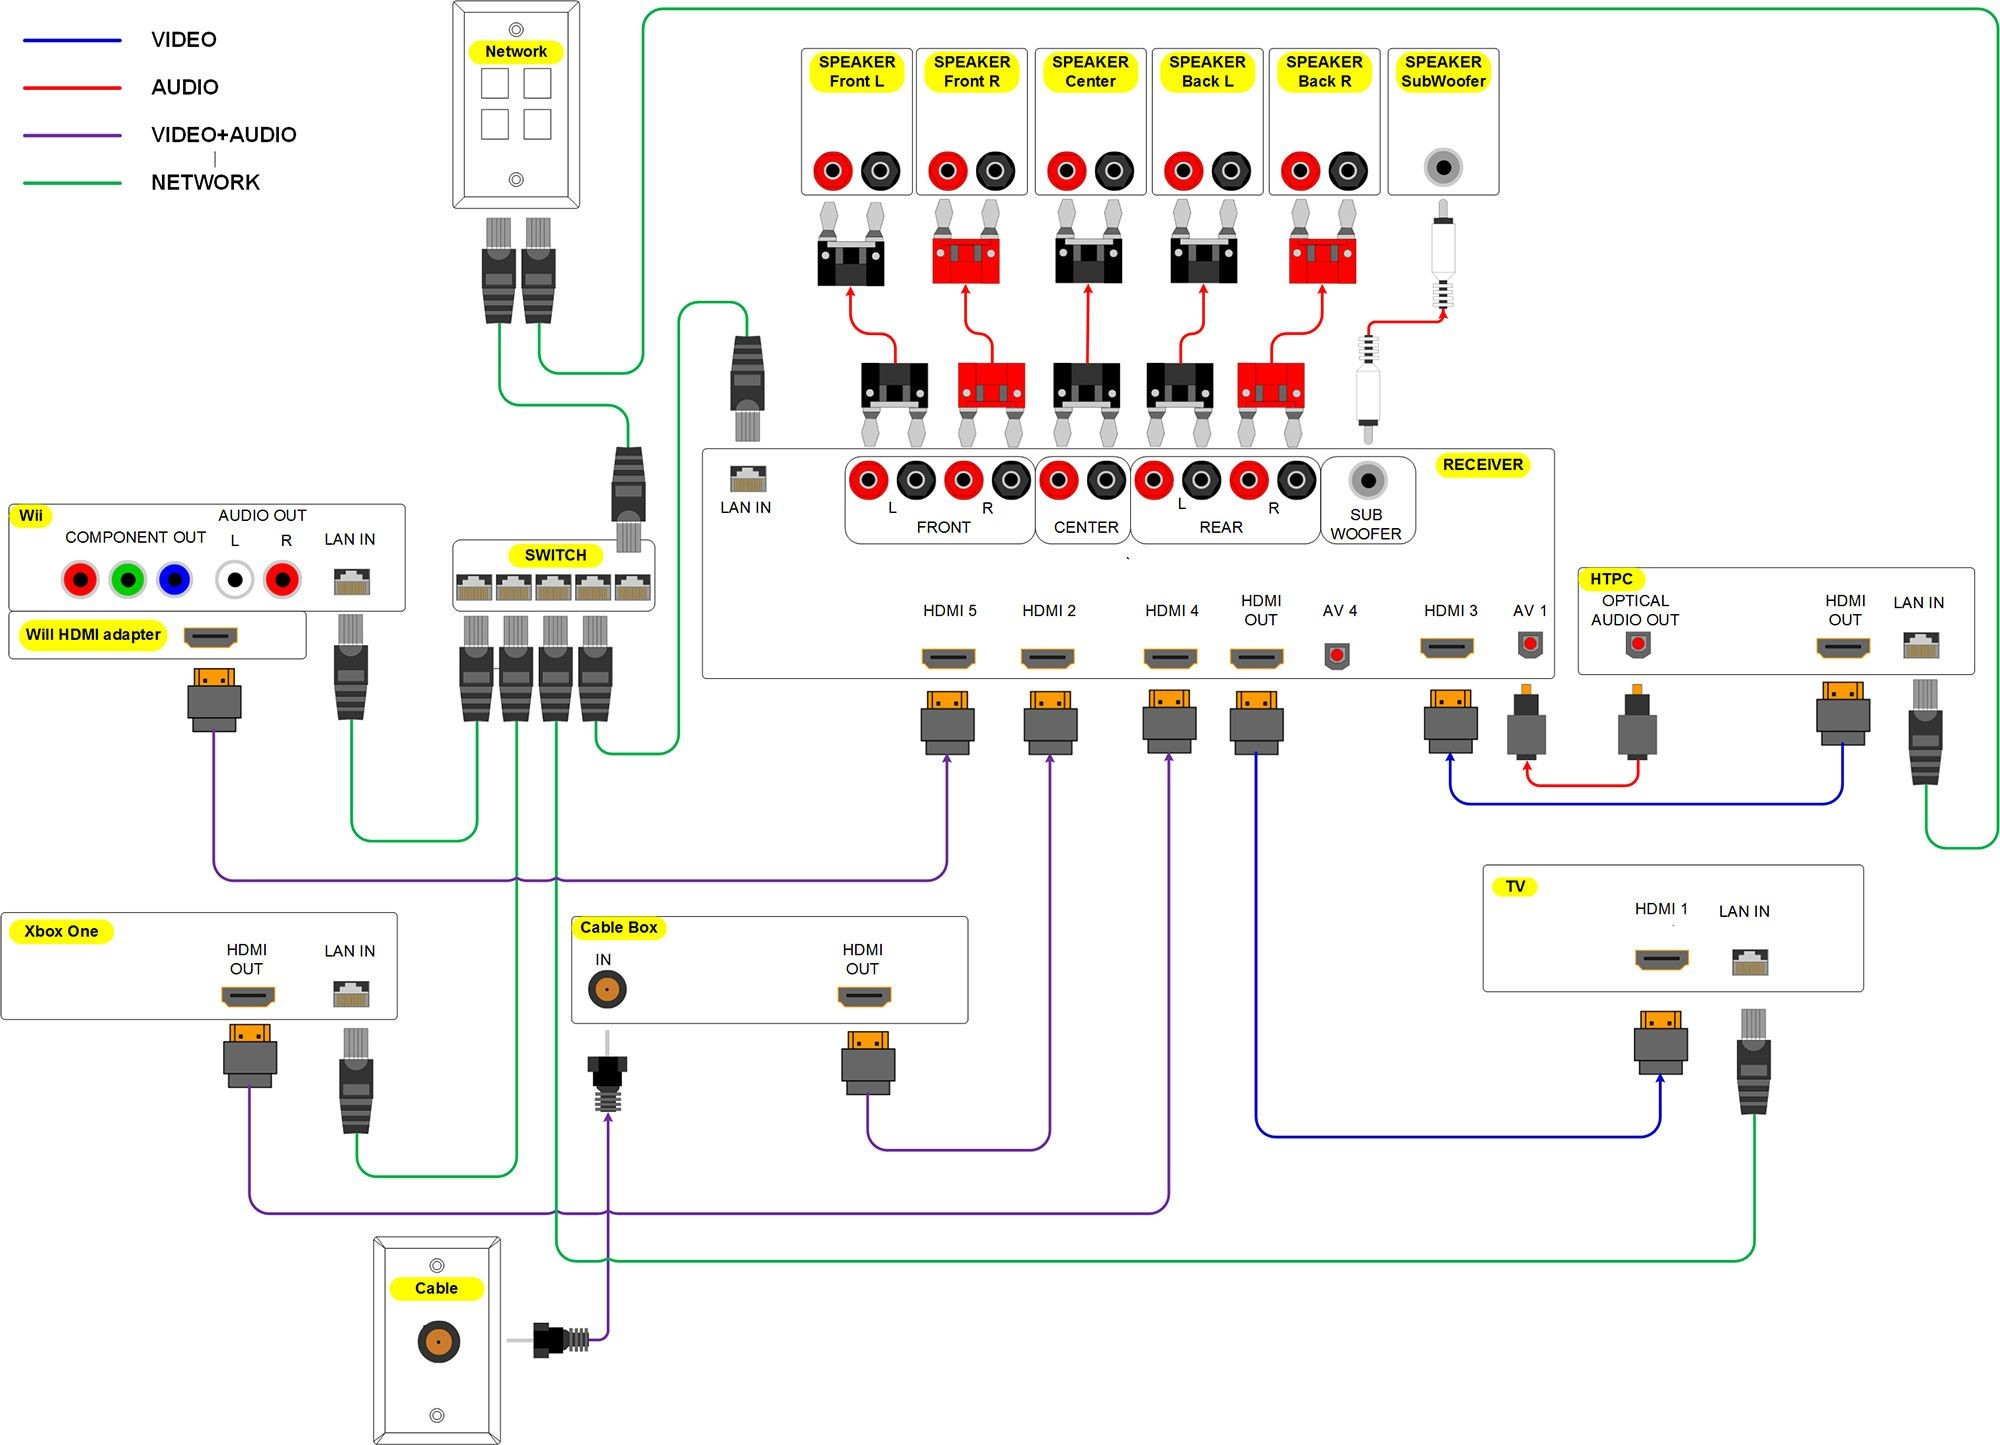 Home theatre Wiring Diagram Home theater Wiring Diagram Online Shop Of Home theatre Wiring Diagram